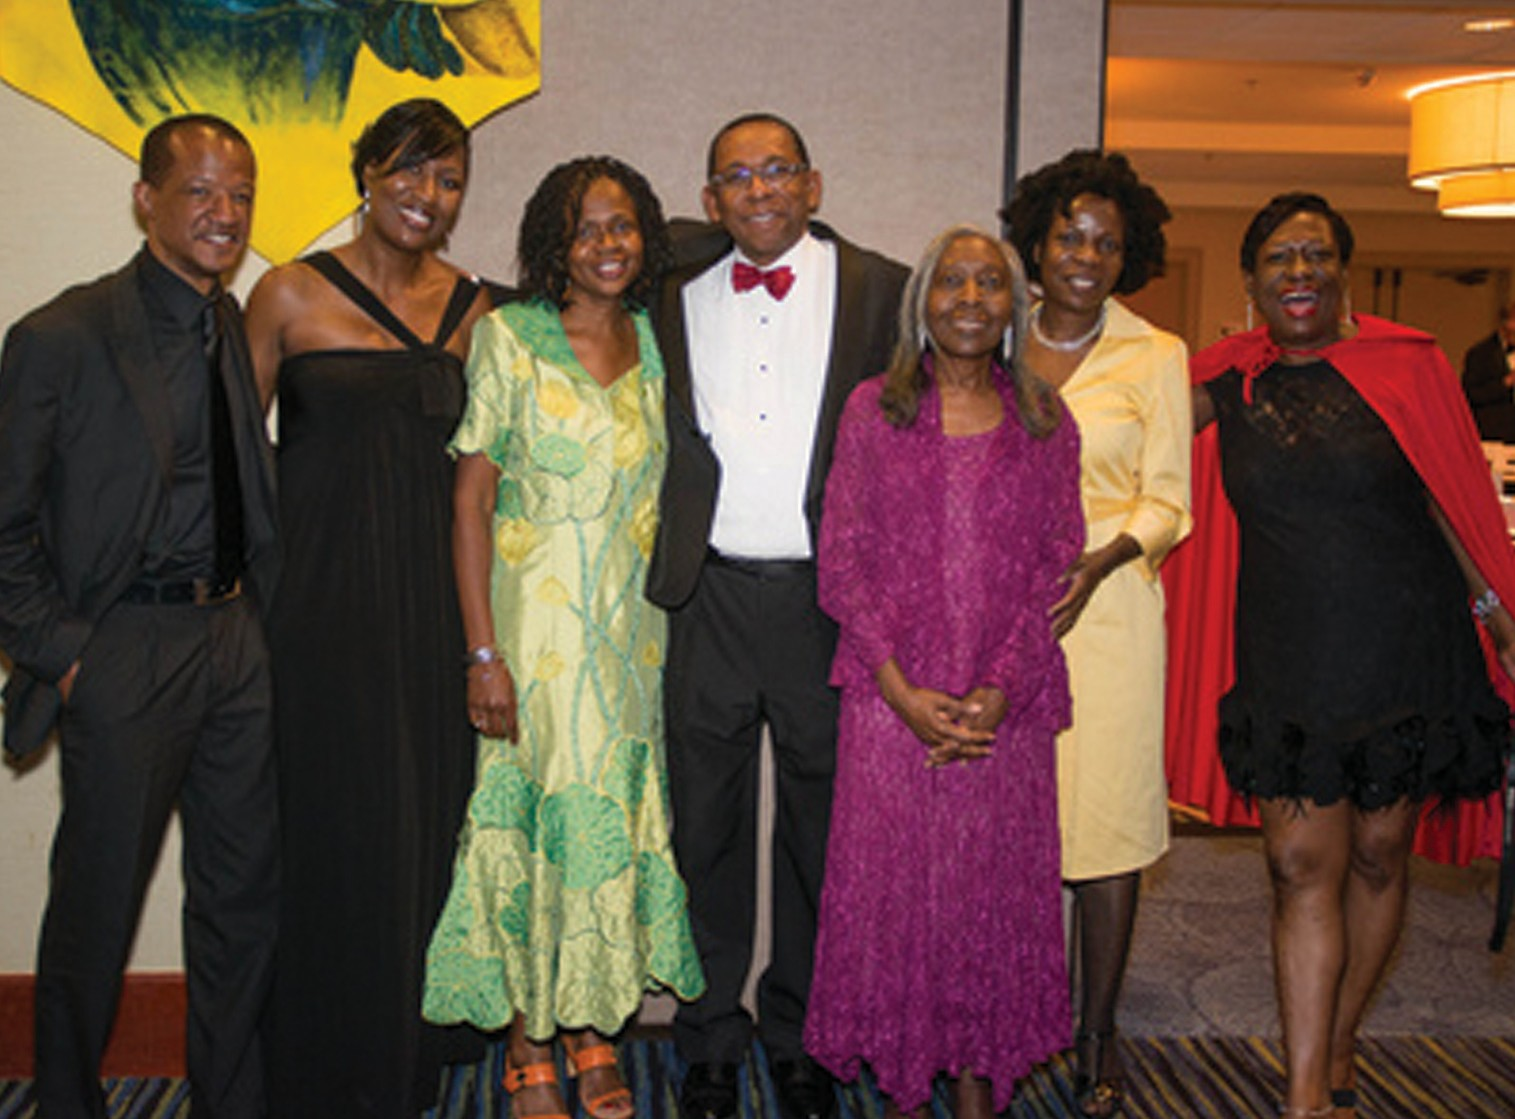 Harold Oglesby team members and guests.